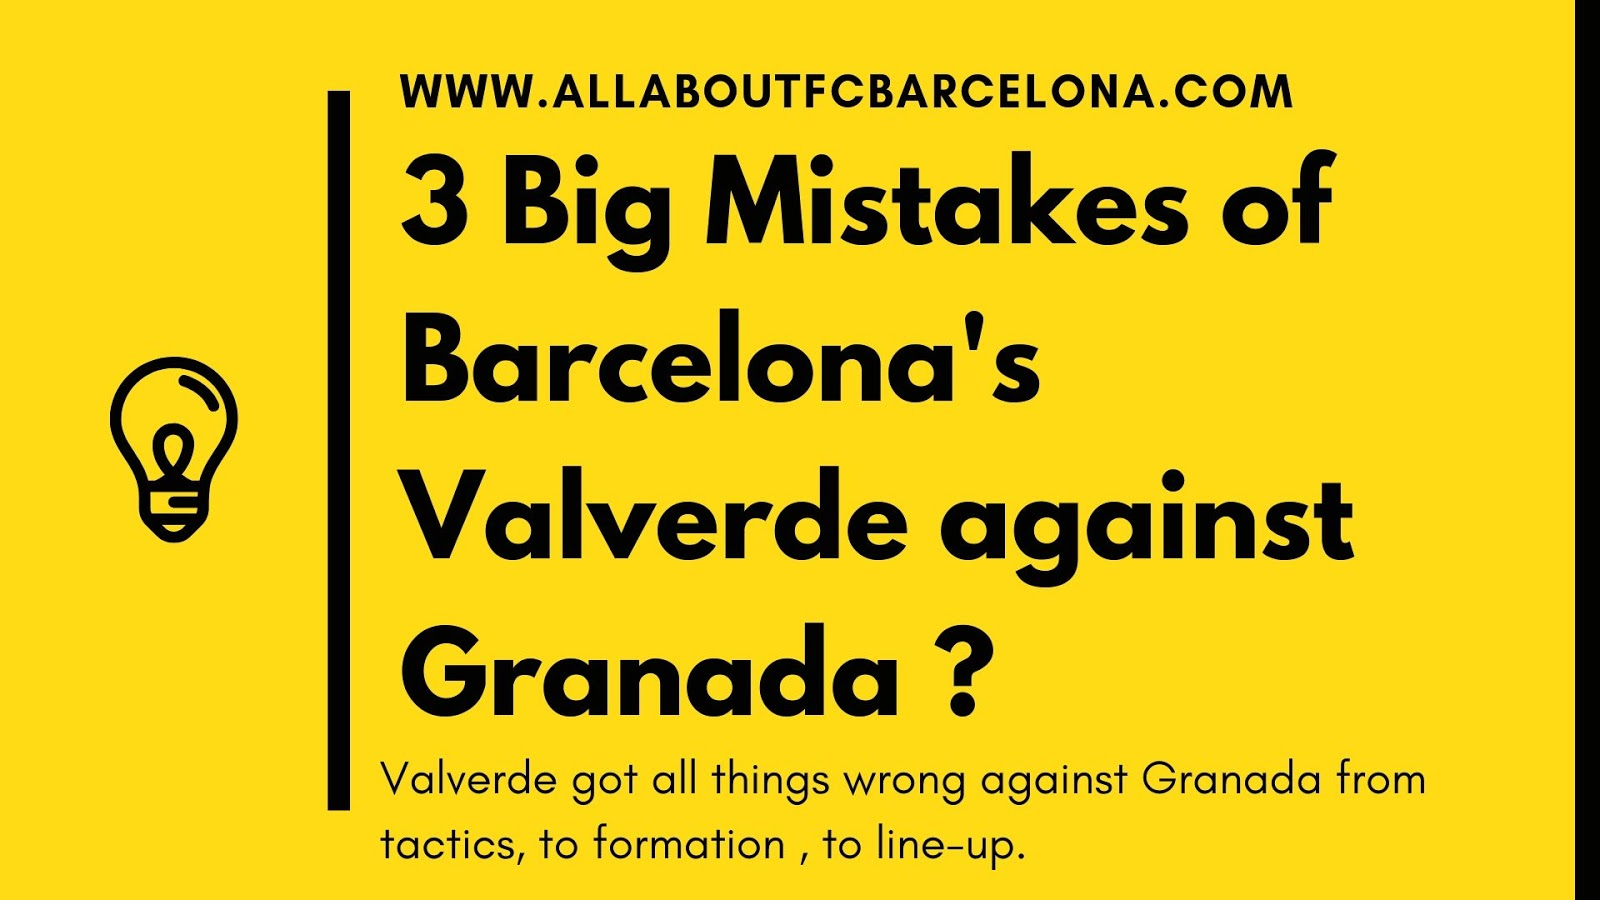 These 3 Big Mistakes by Barcelona's Valverde against Granada that Cost Them Dearly?